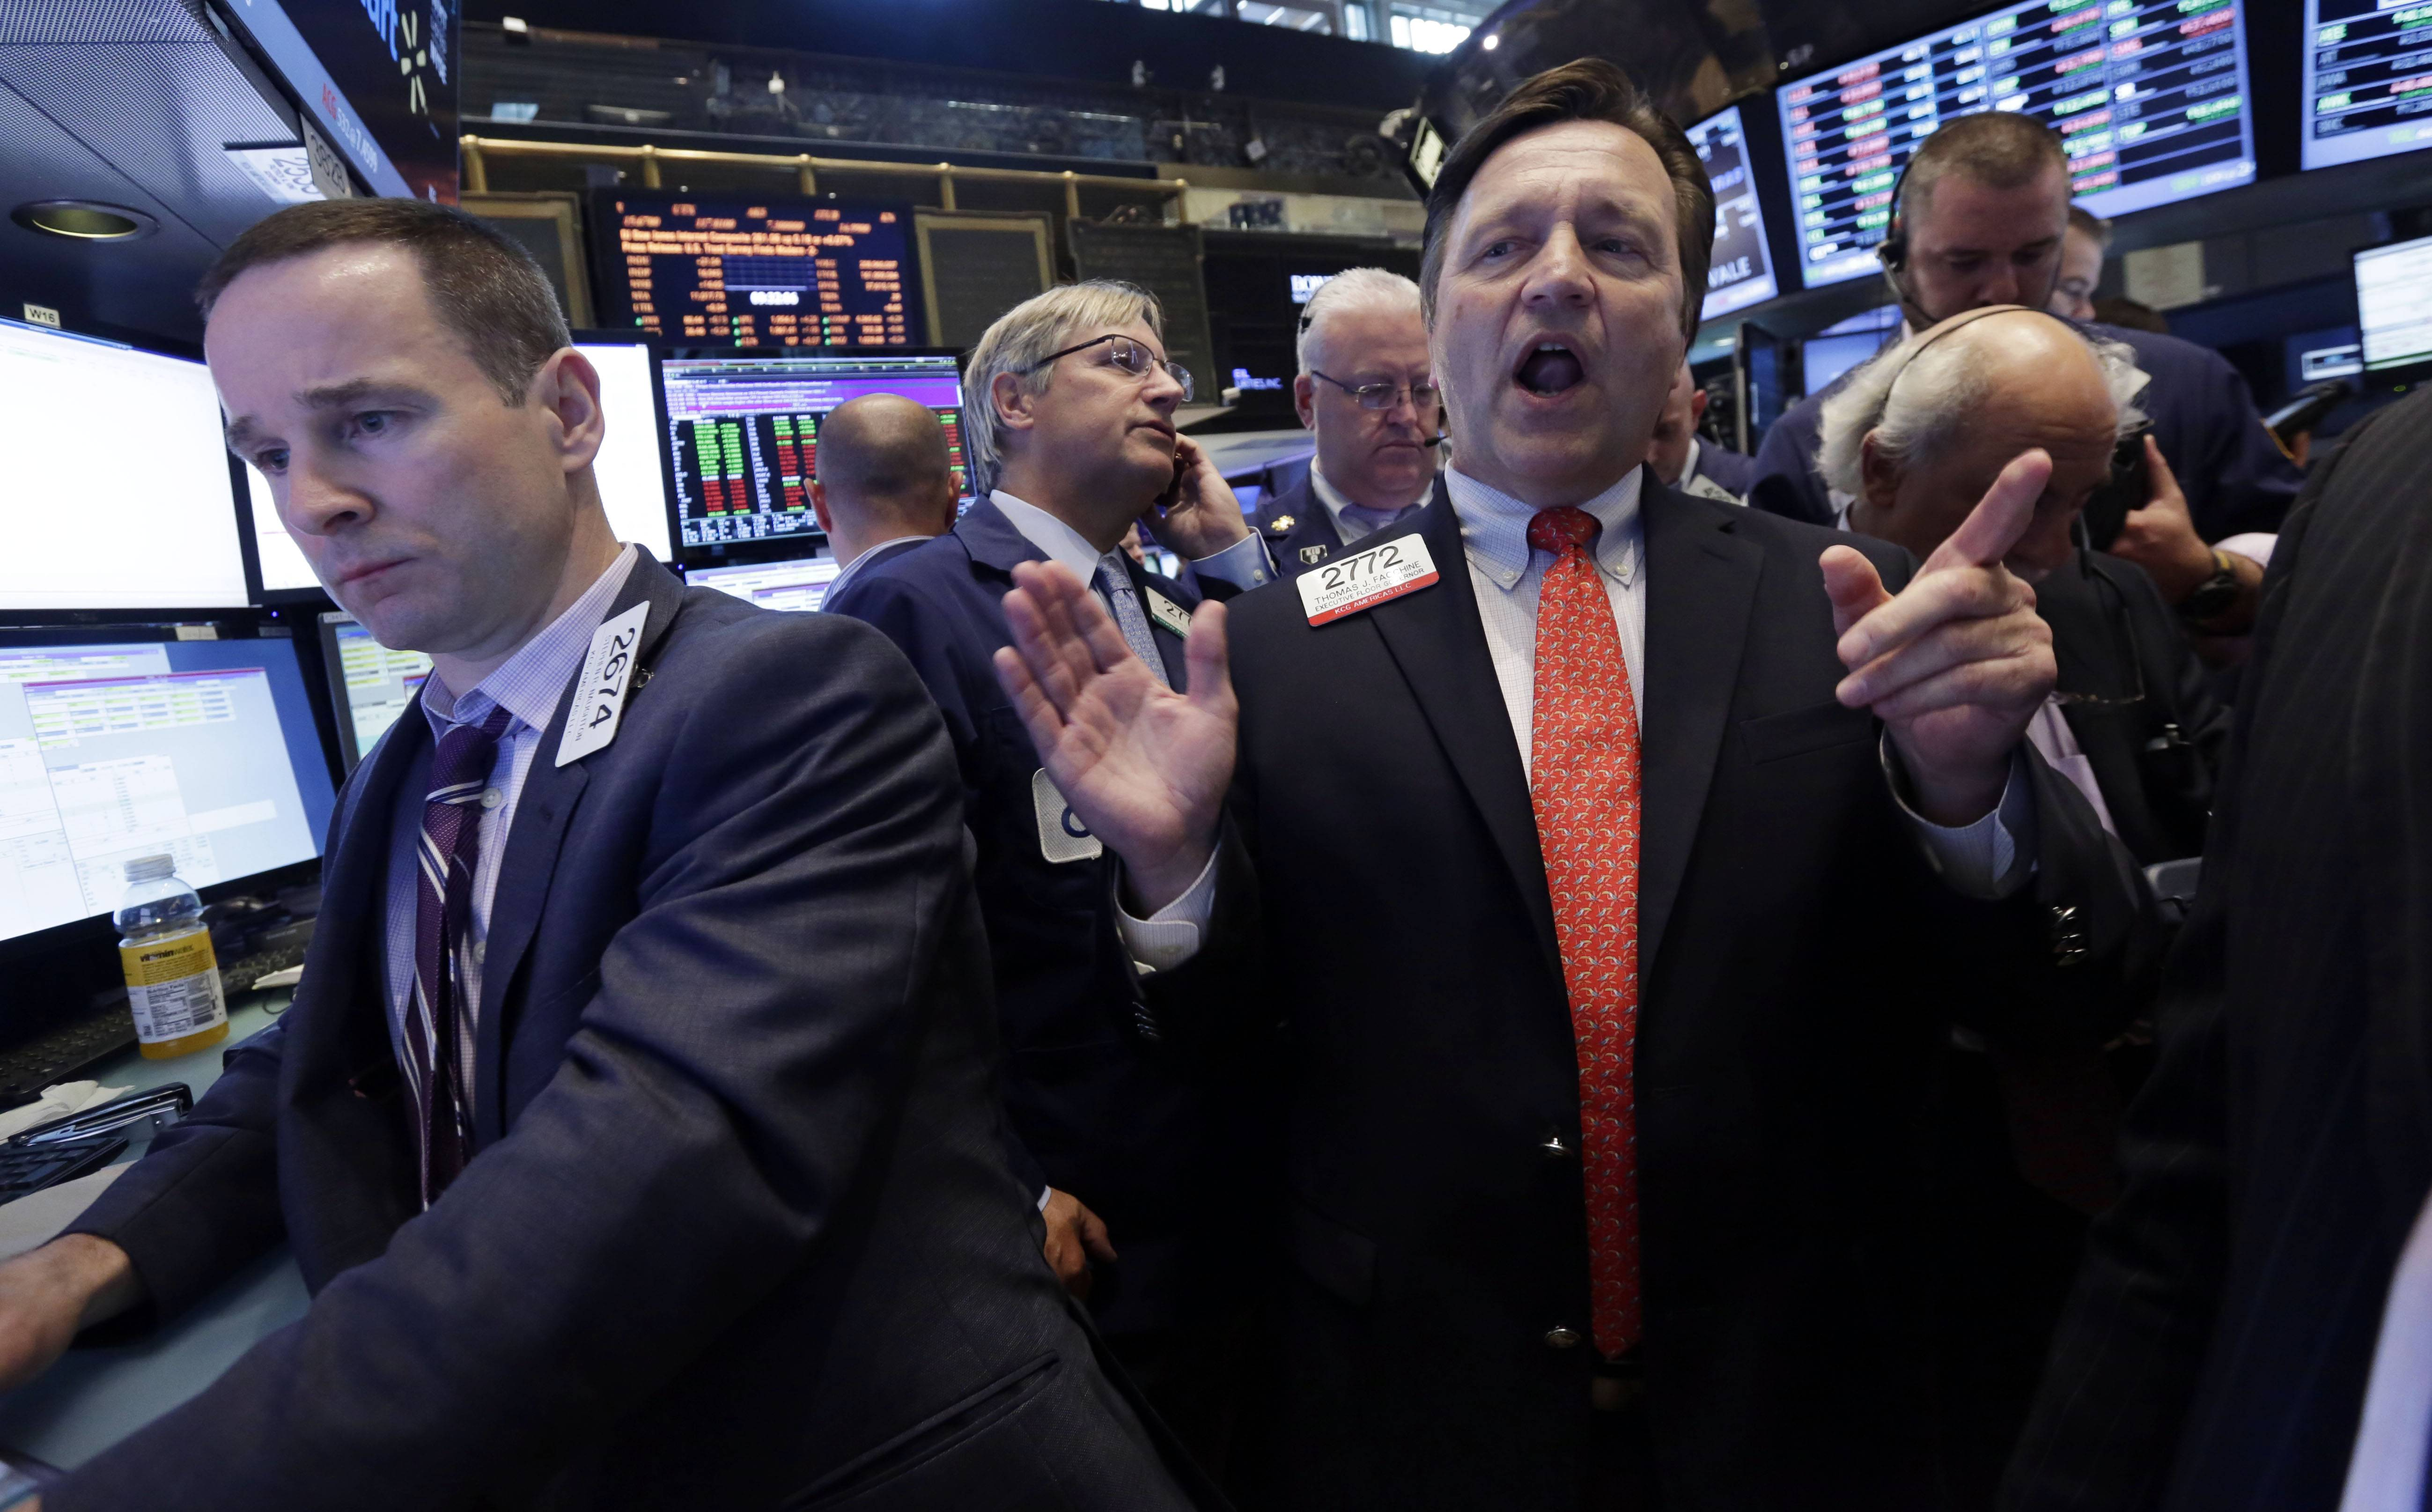 Specialist Thomas Facchine, right, calls out prices Friday during the IPO of Eclipse Resources Corp. on the floor of the New York Stock Exchange.